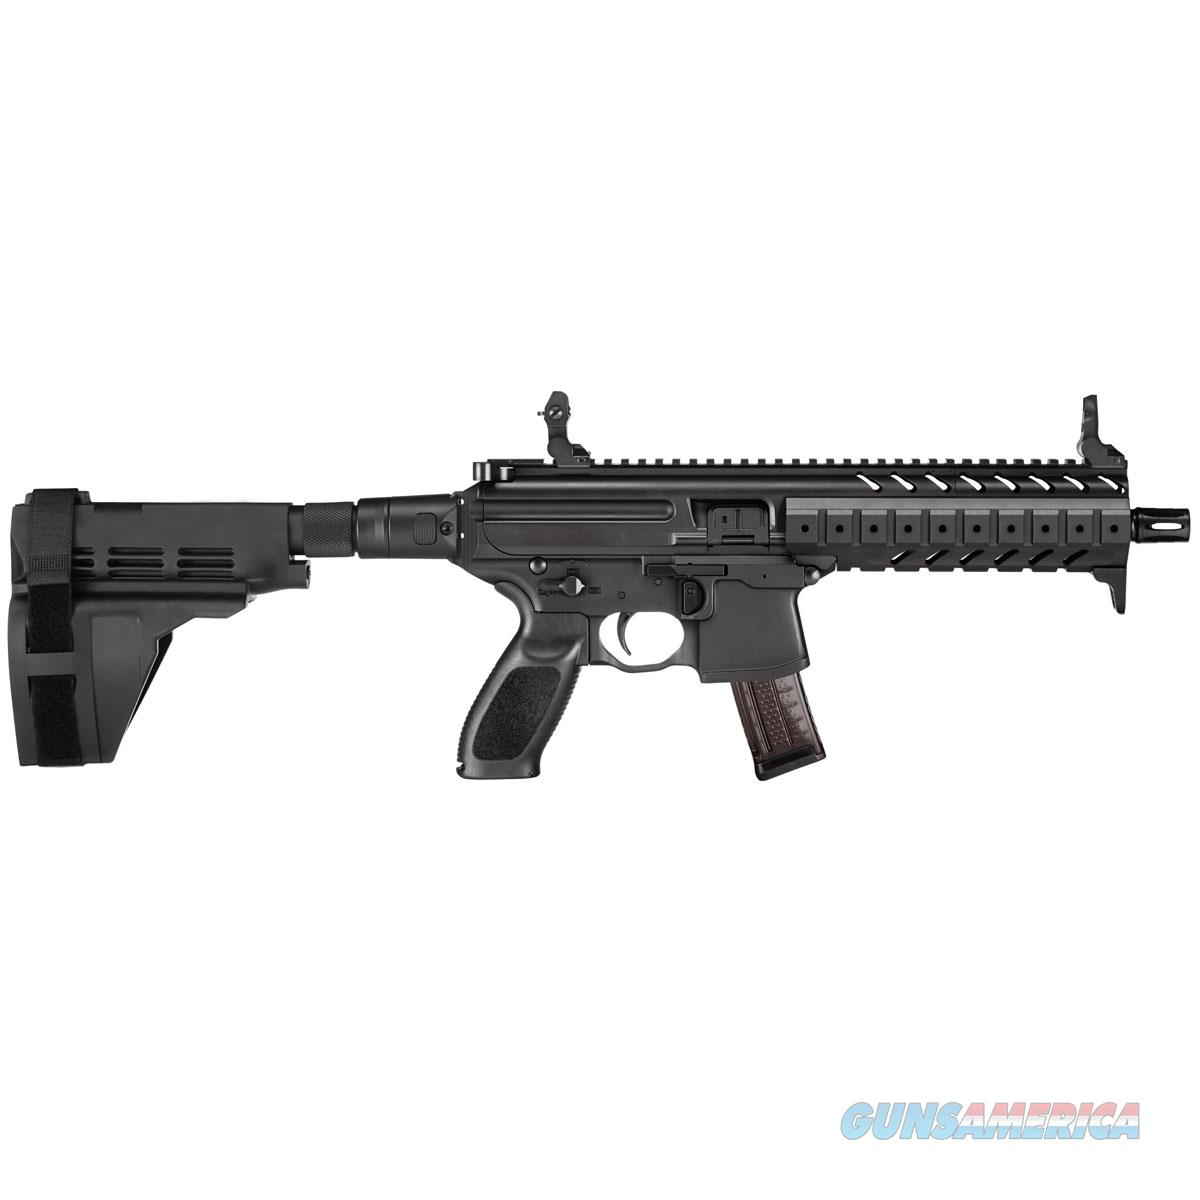 "Sig Sauer MPX 9mm Pistol 8"" Barrel with PSB and 30 Round Mag MPX-P-9-PSB   Guns > Pistols > Sig - Sauer/Sigarms Pistols > Other"